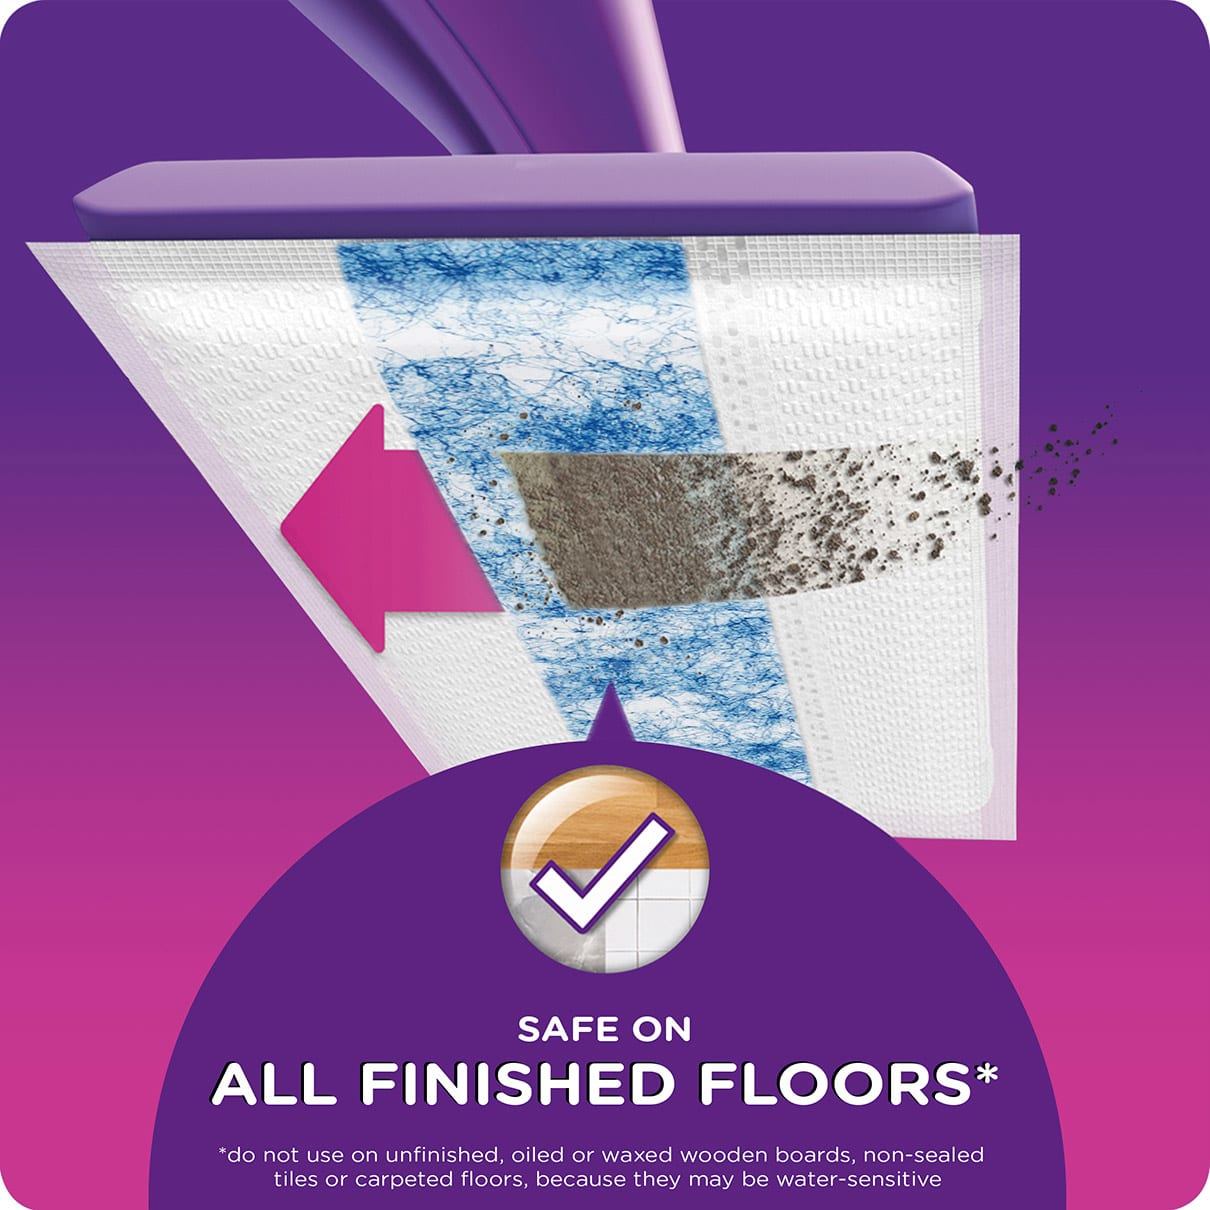 Swiffer WetJet HD Pad Refill Instructions Safe On Finished Floors